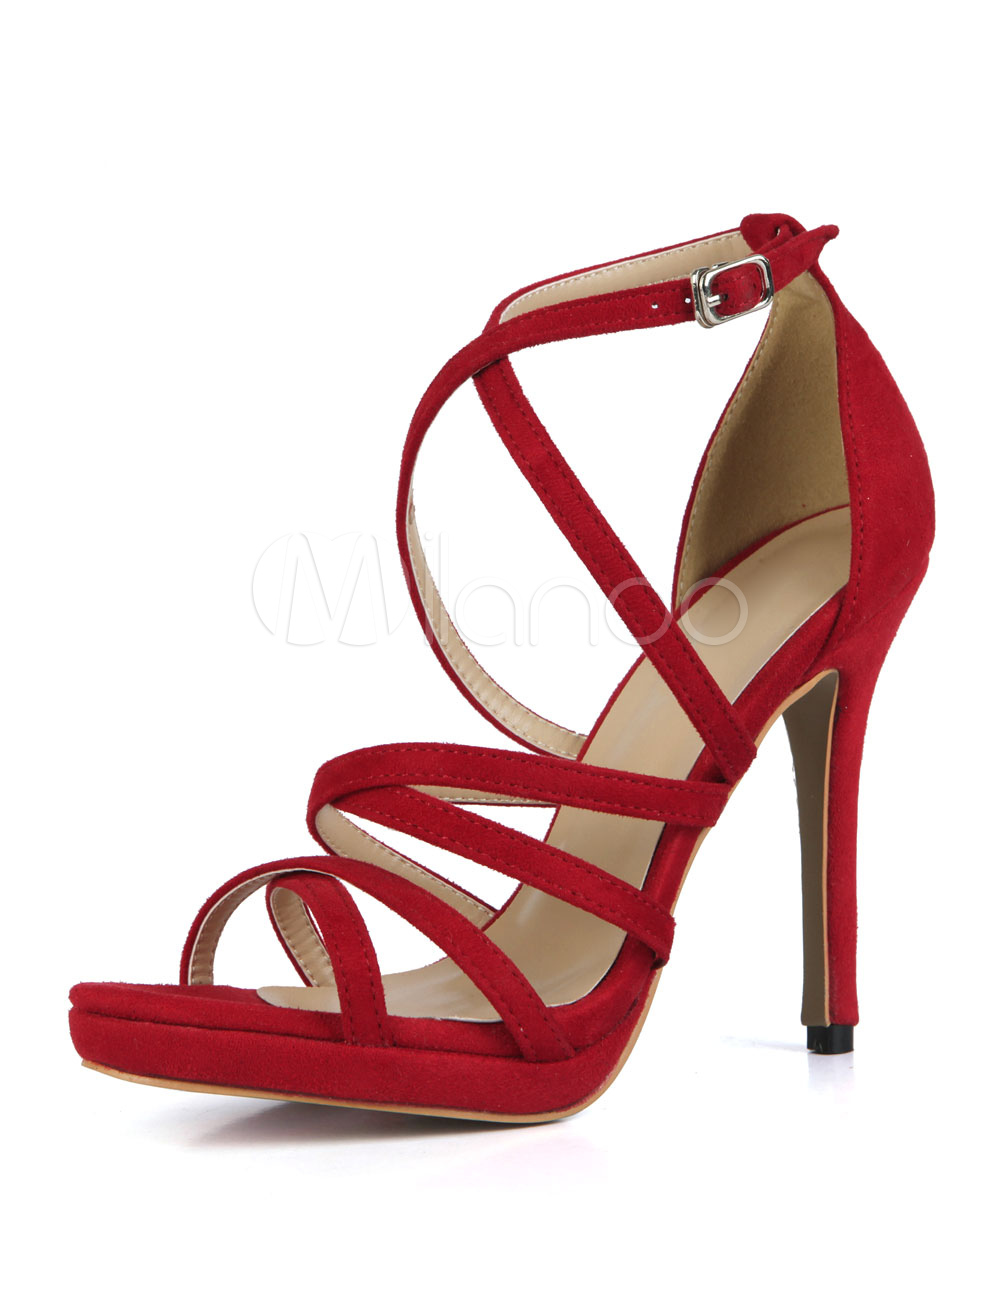 Red Sandal Shoes High Heel Open Toe Stiletto Criss Cross Suede Women Sandals